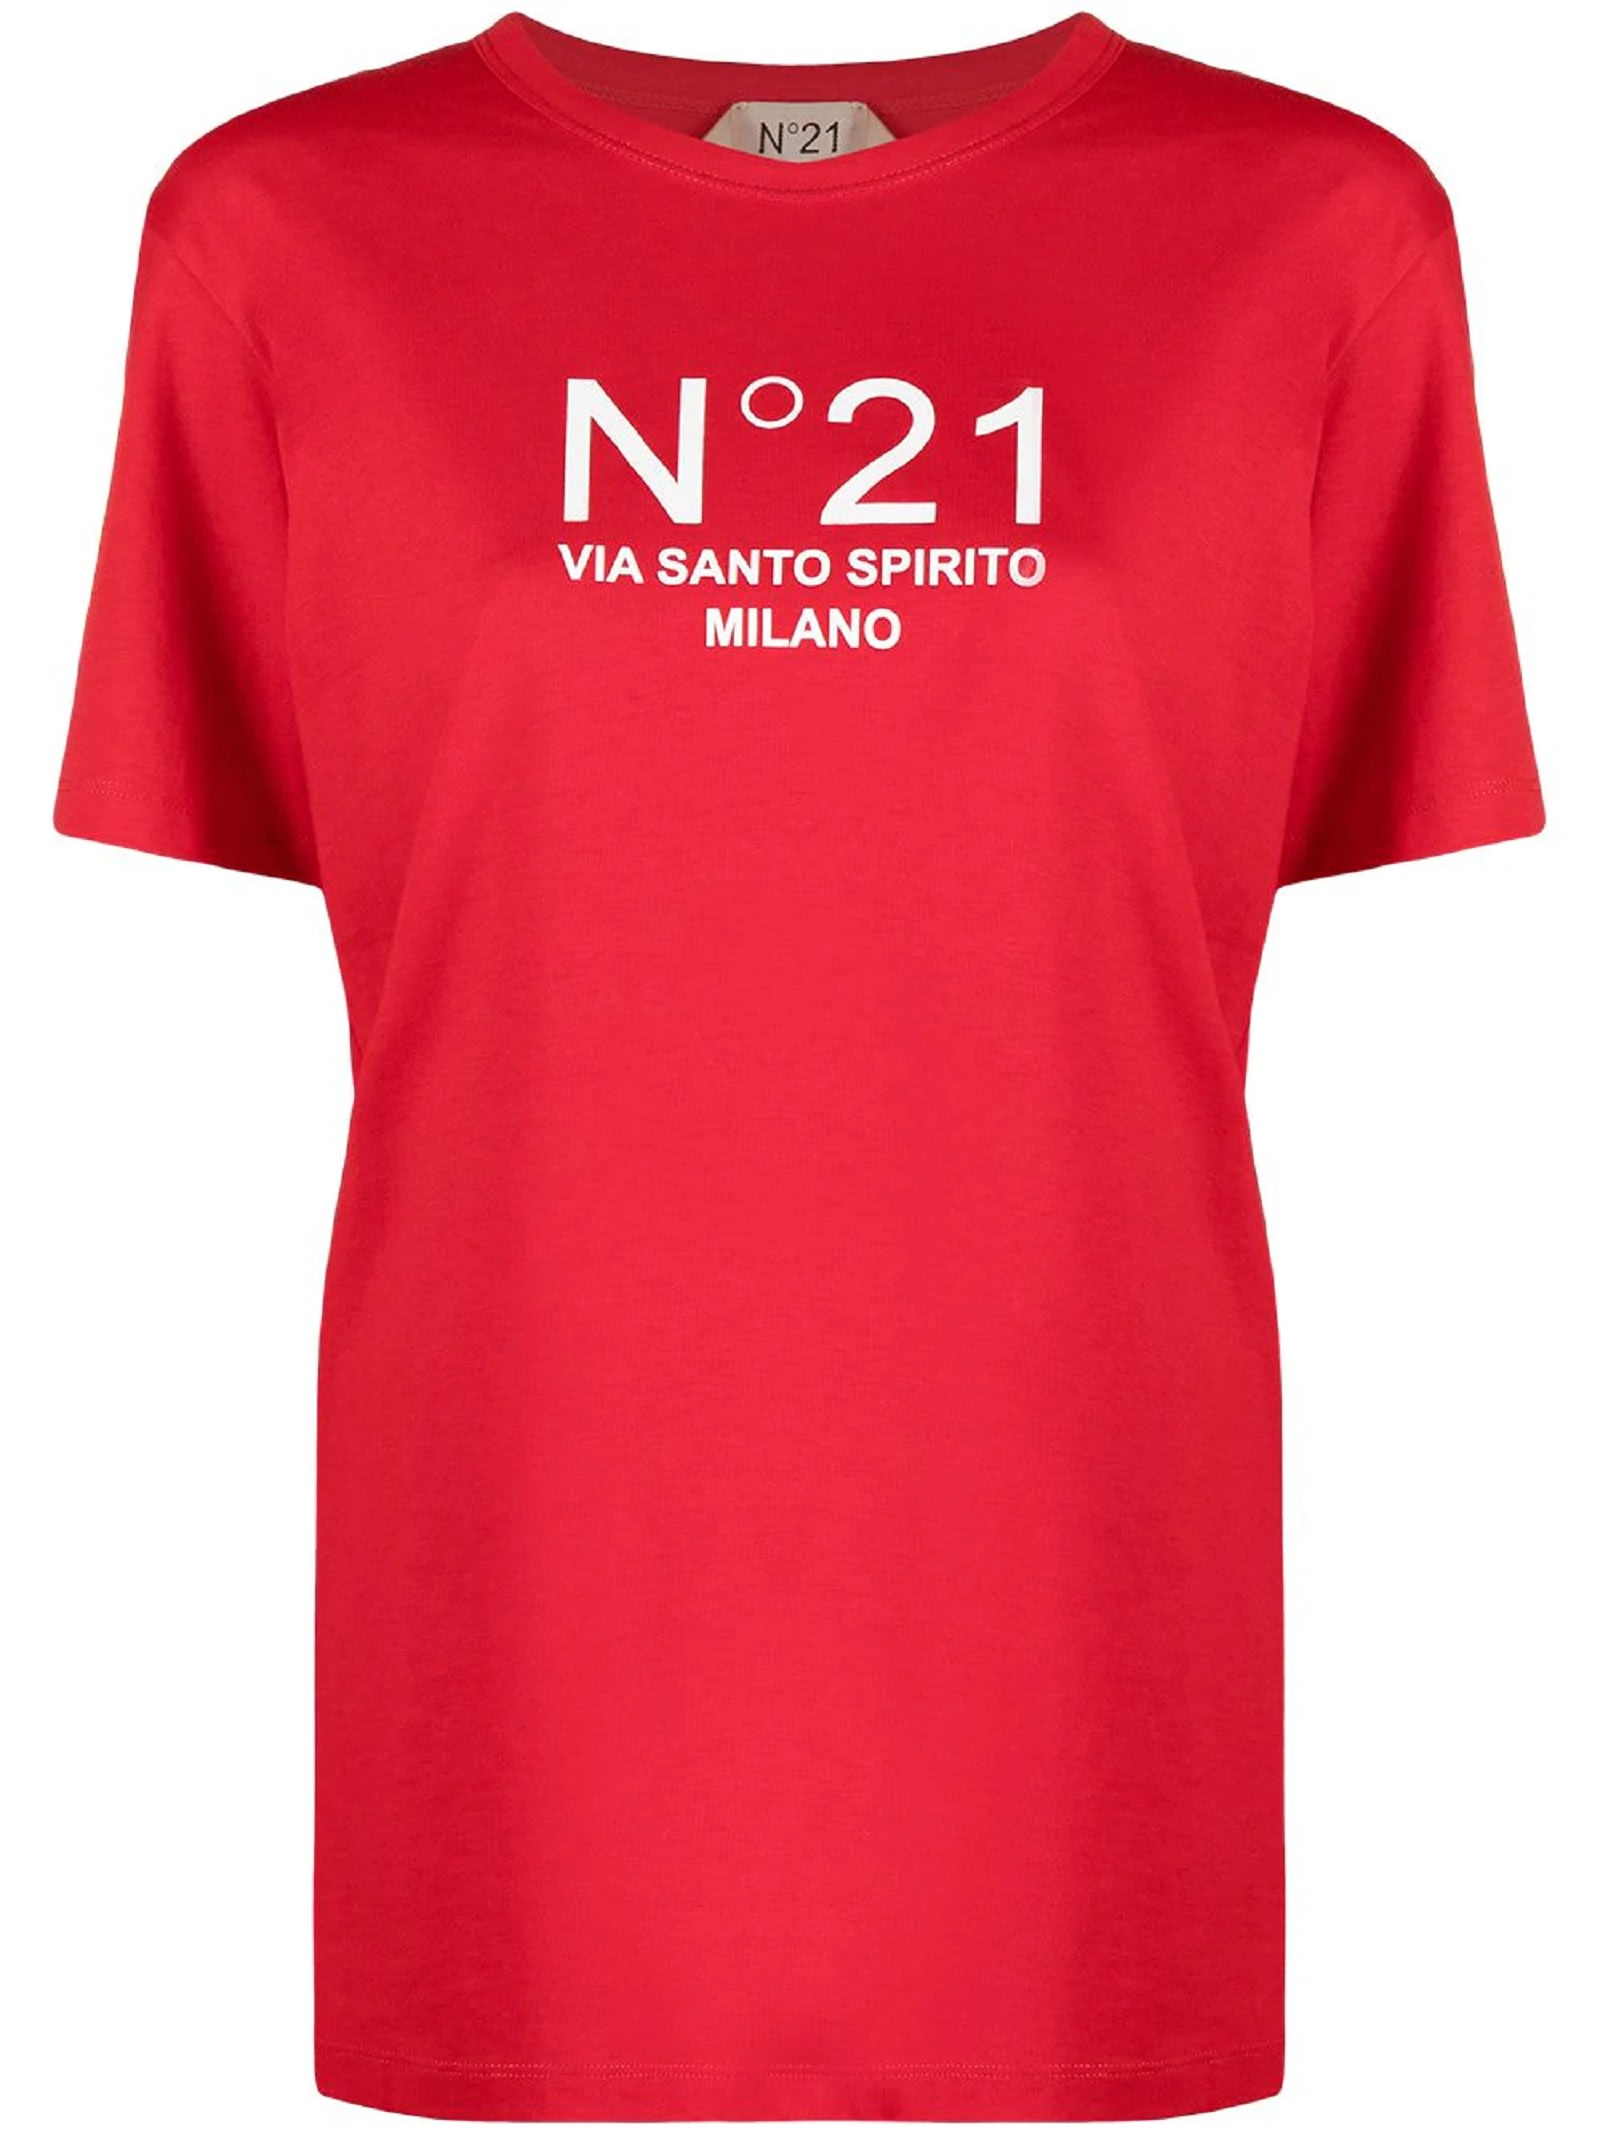 N°21 Tops RED COTTON T-SHIRT